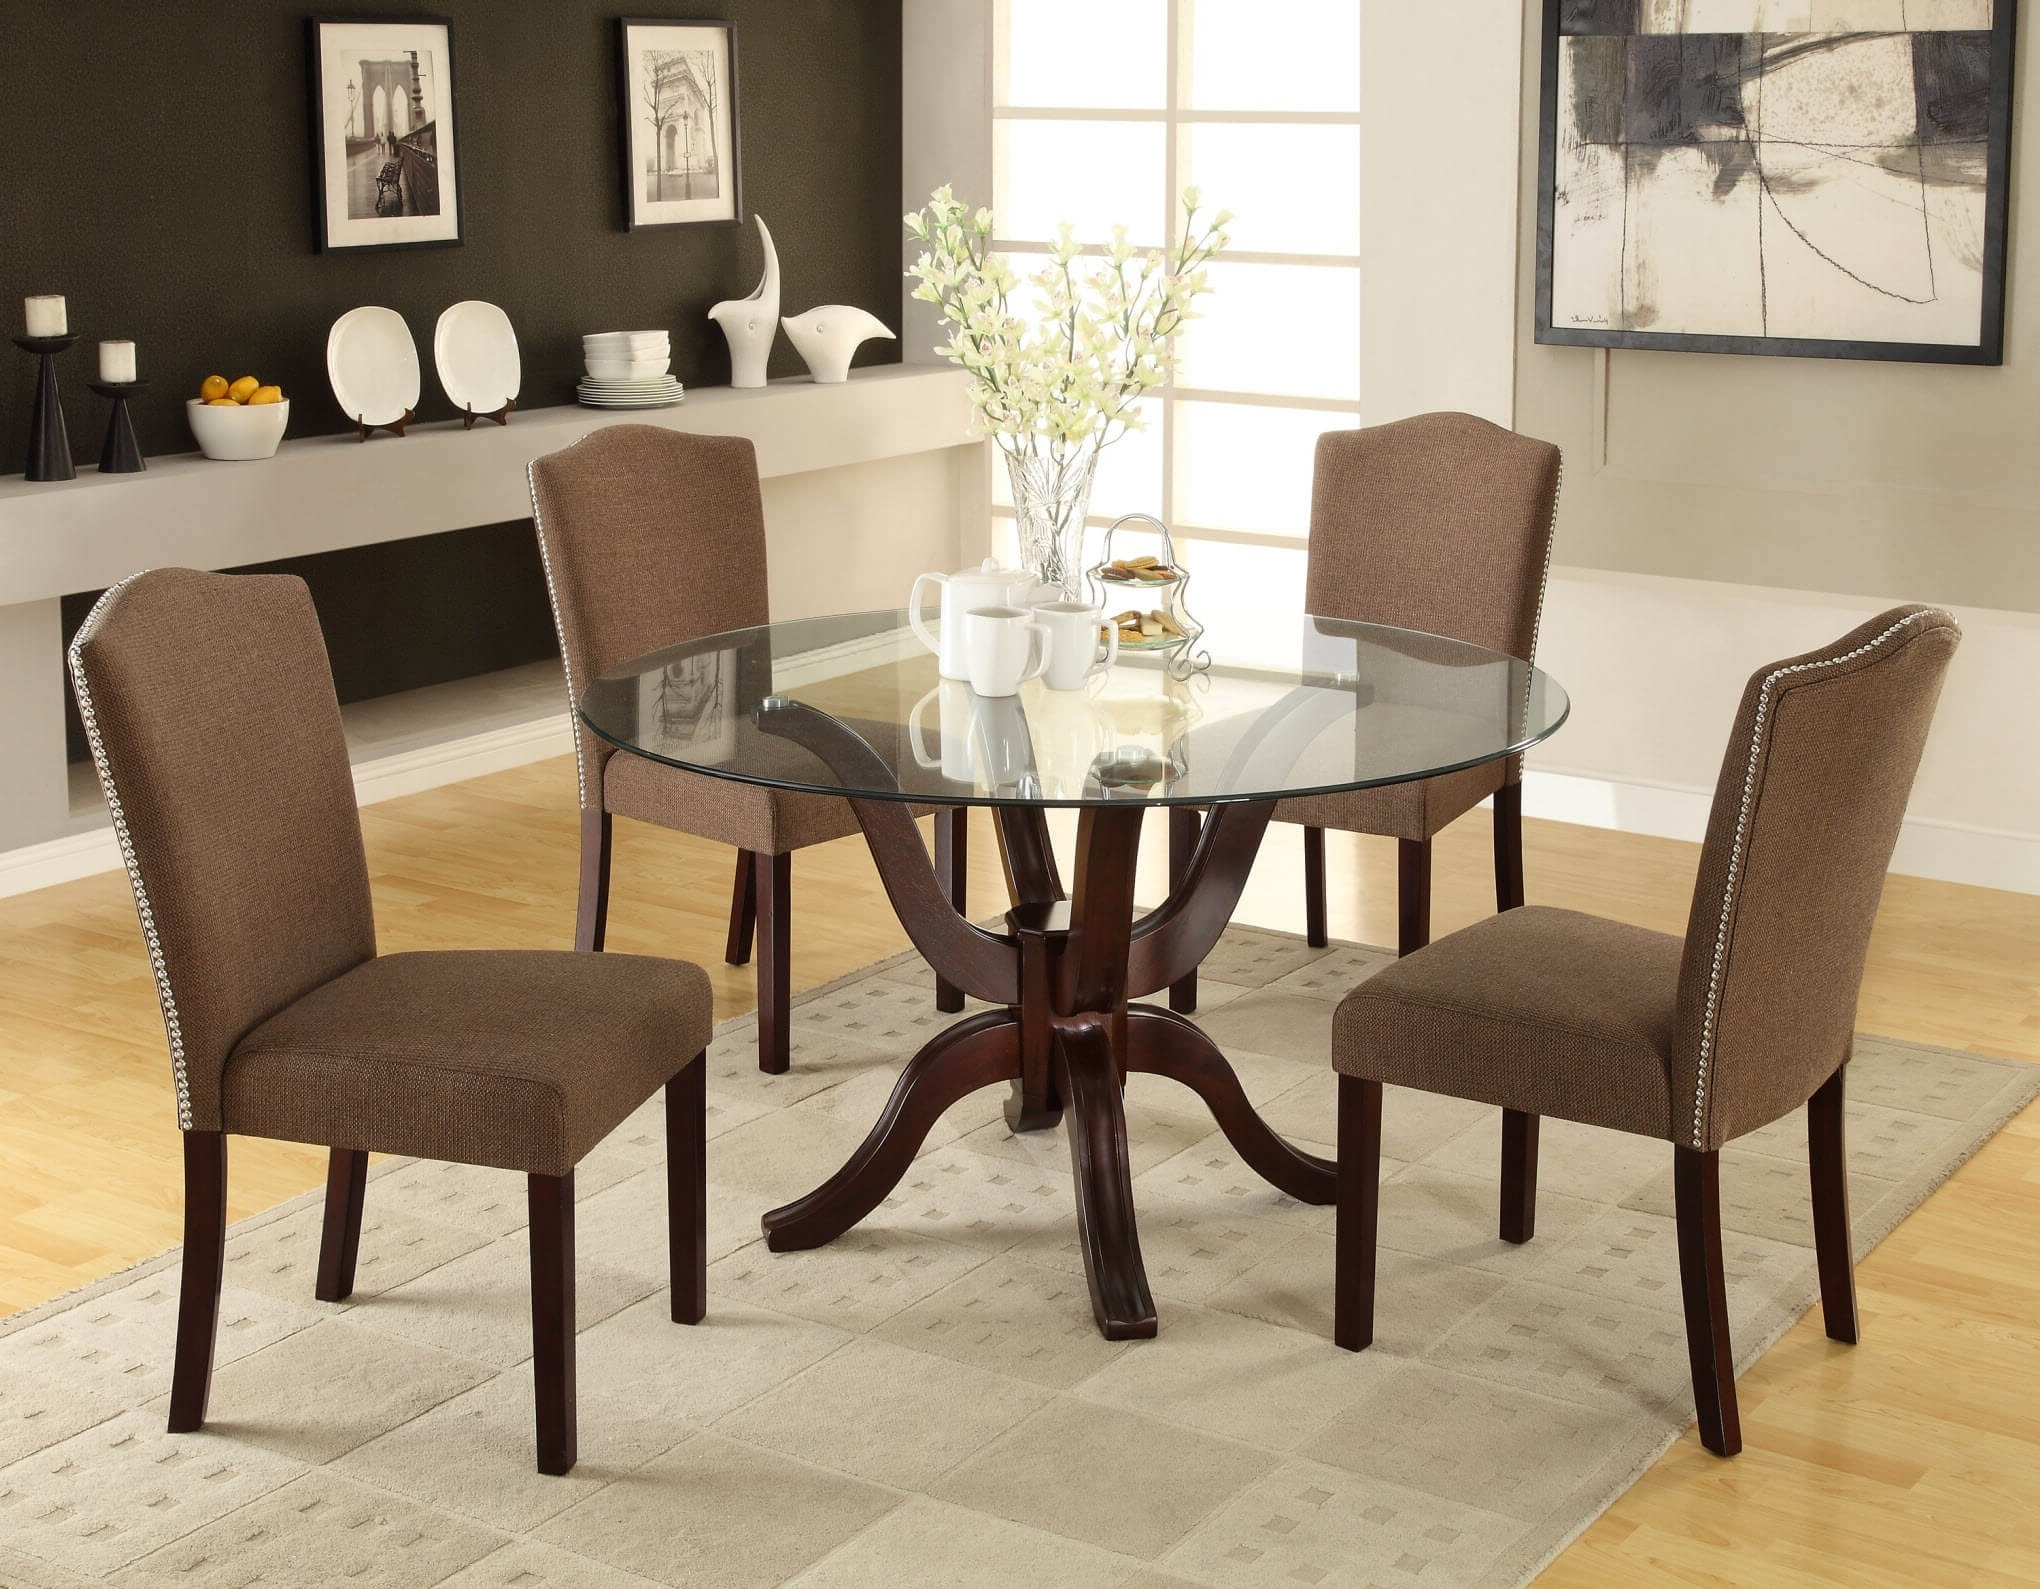 Latest Round Glass Dining Table Sets For 4 Best Of Round Glass Dining Table With Regard To Dining Room Glass Tables Sets (View 10 of 25)